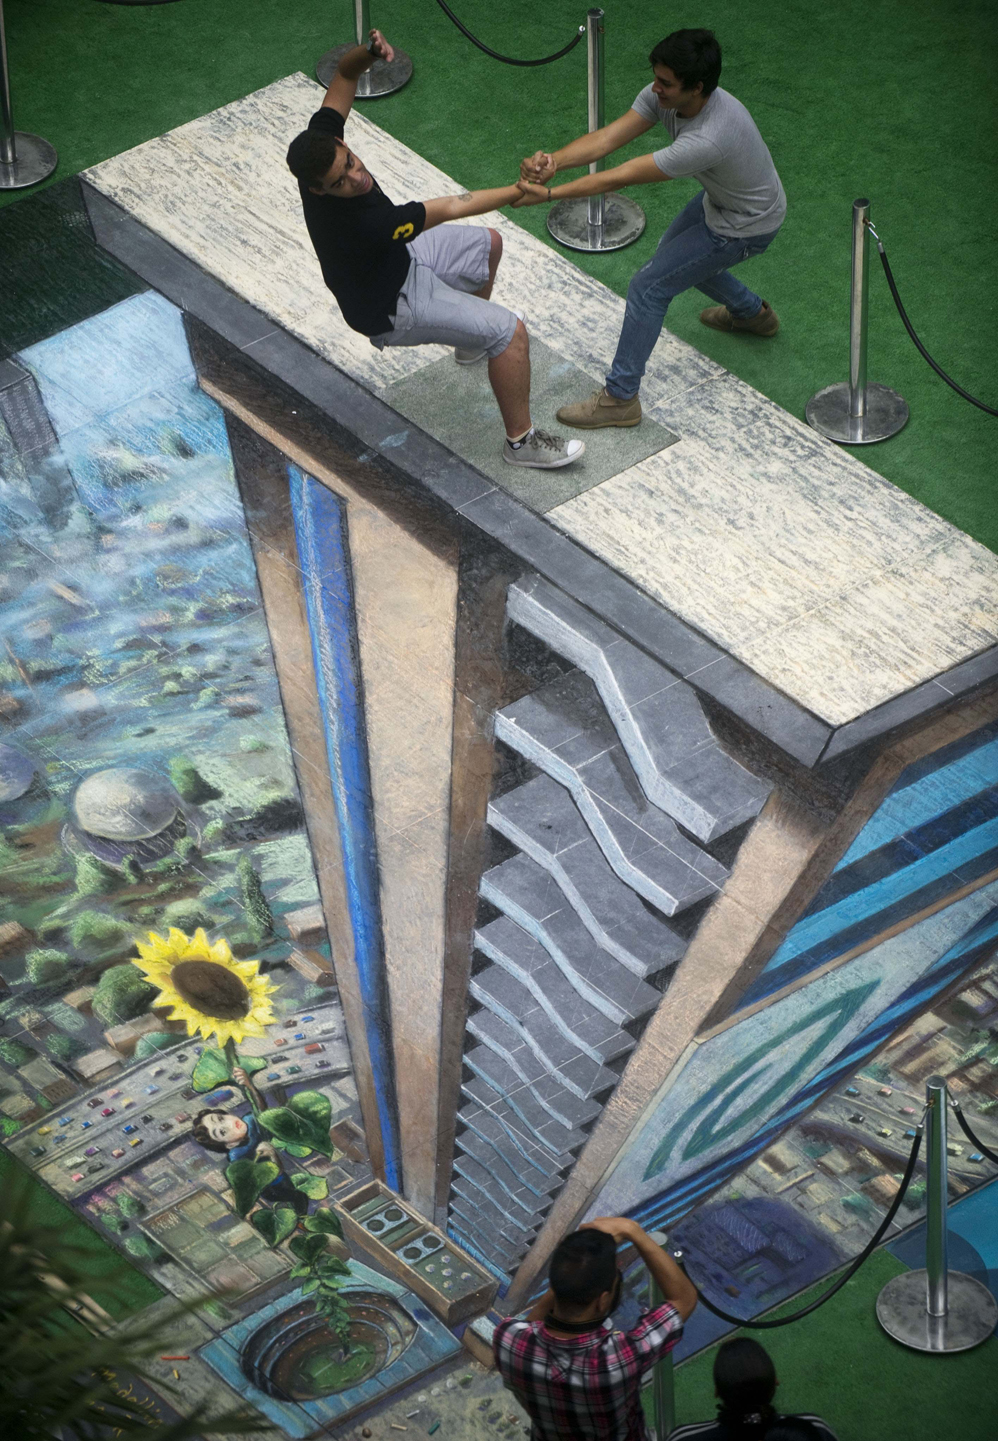 Two men pose by the work of British artist Julian Beever, specialized in pavement drawings, wall murals and realistic paintings, made in a shopping center in Medellin, Antioquia department, Colombia on September 5, 2013. Beever made the painting using colour chalks. AFP PHOTO /Raul ARBOLEDA